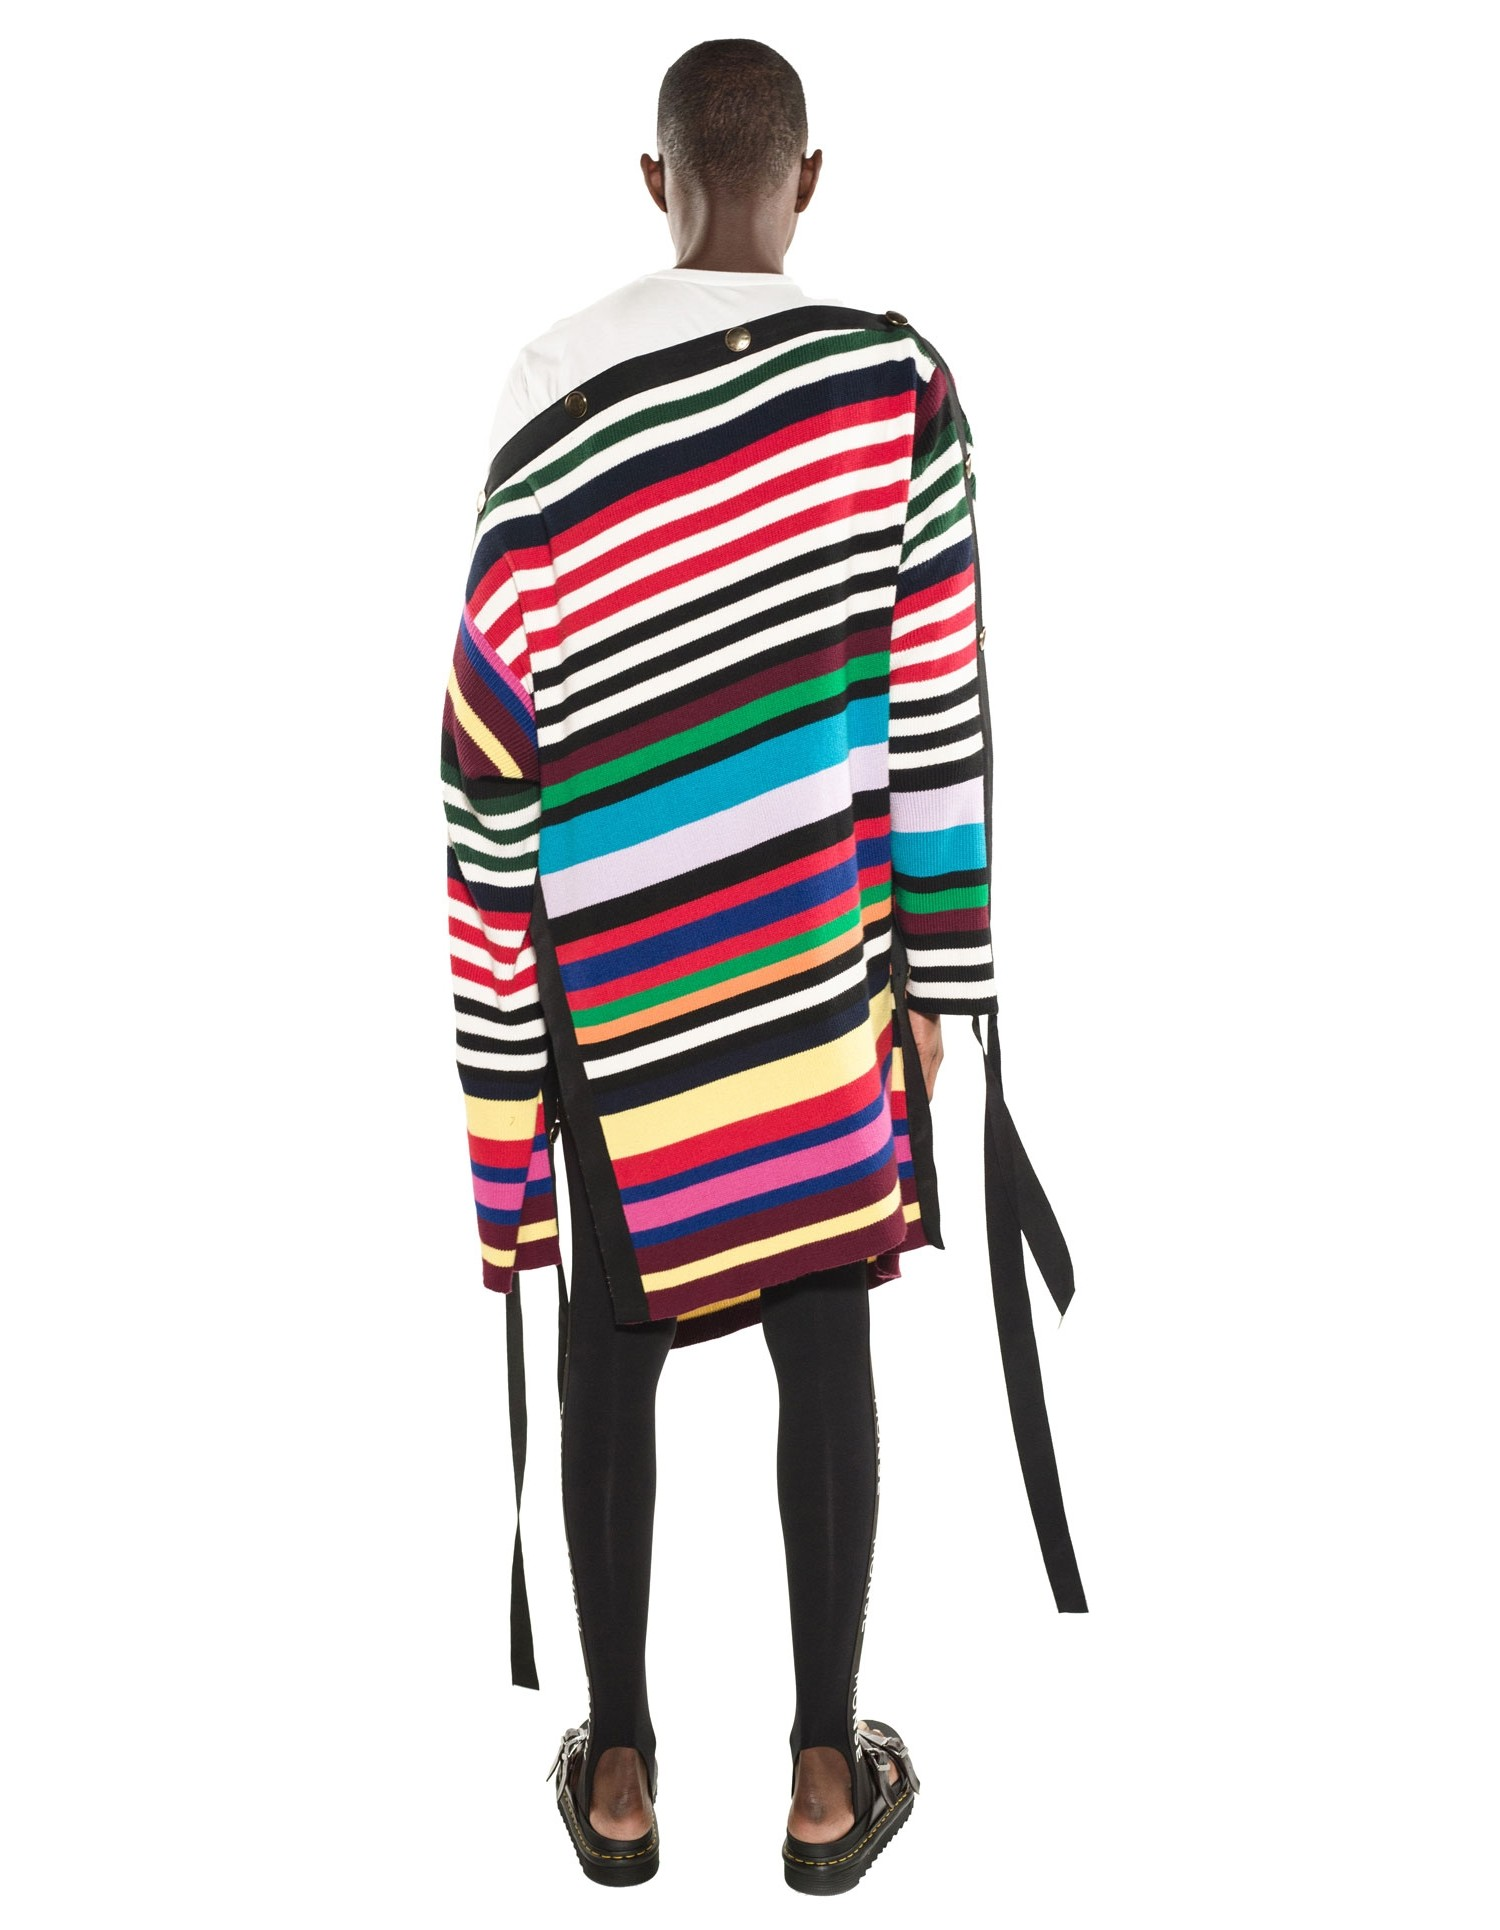 Monse Unisex Two-Tone Grosgrain Pullover on Model Back